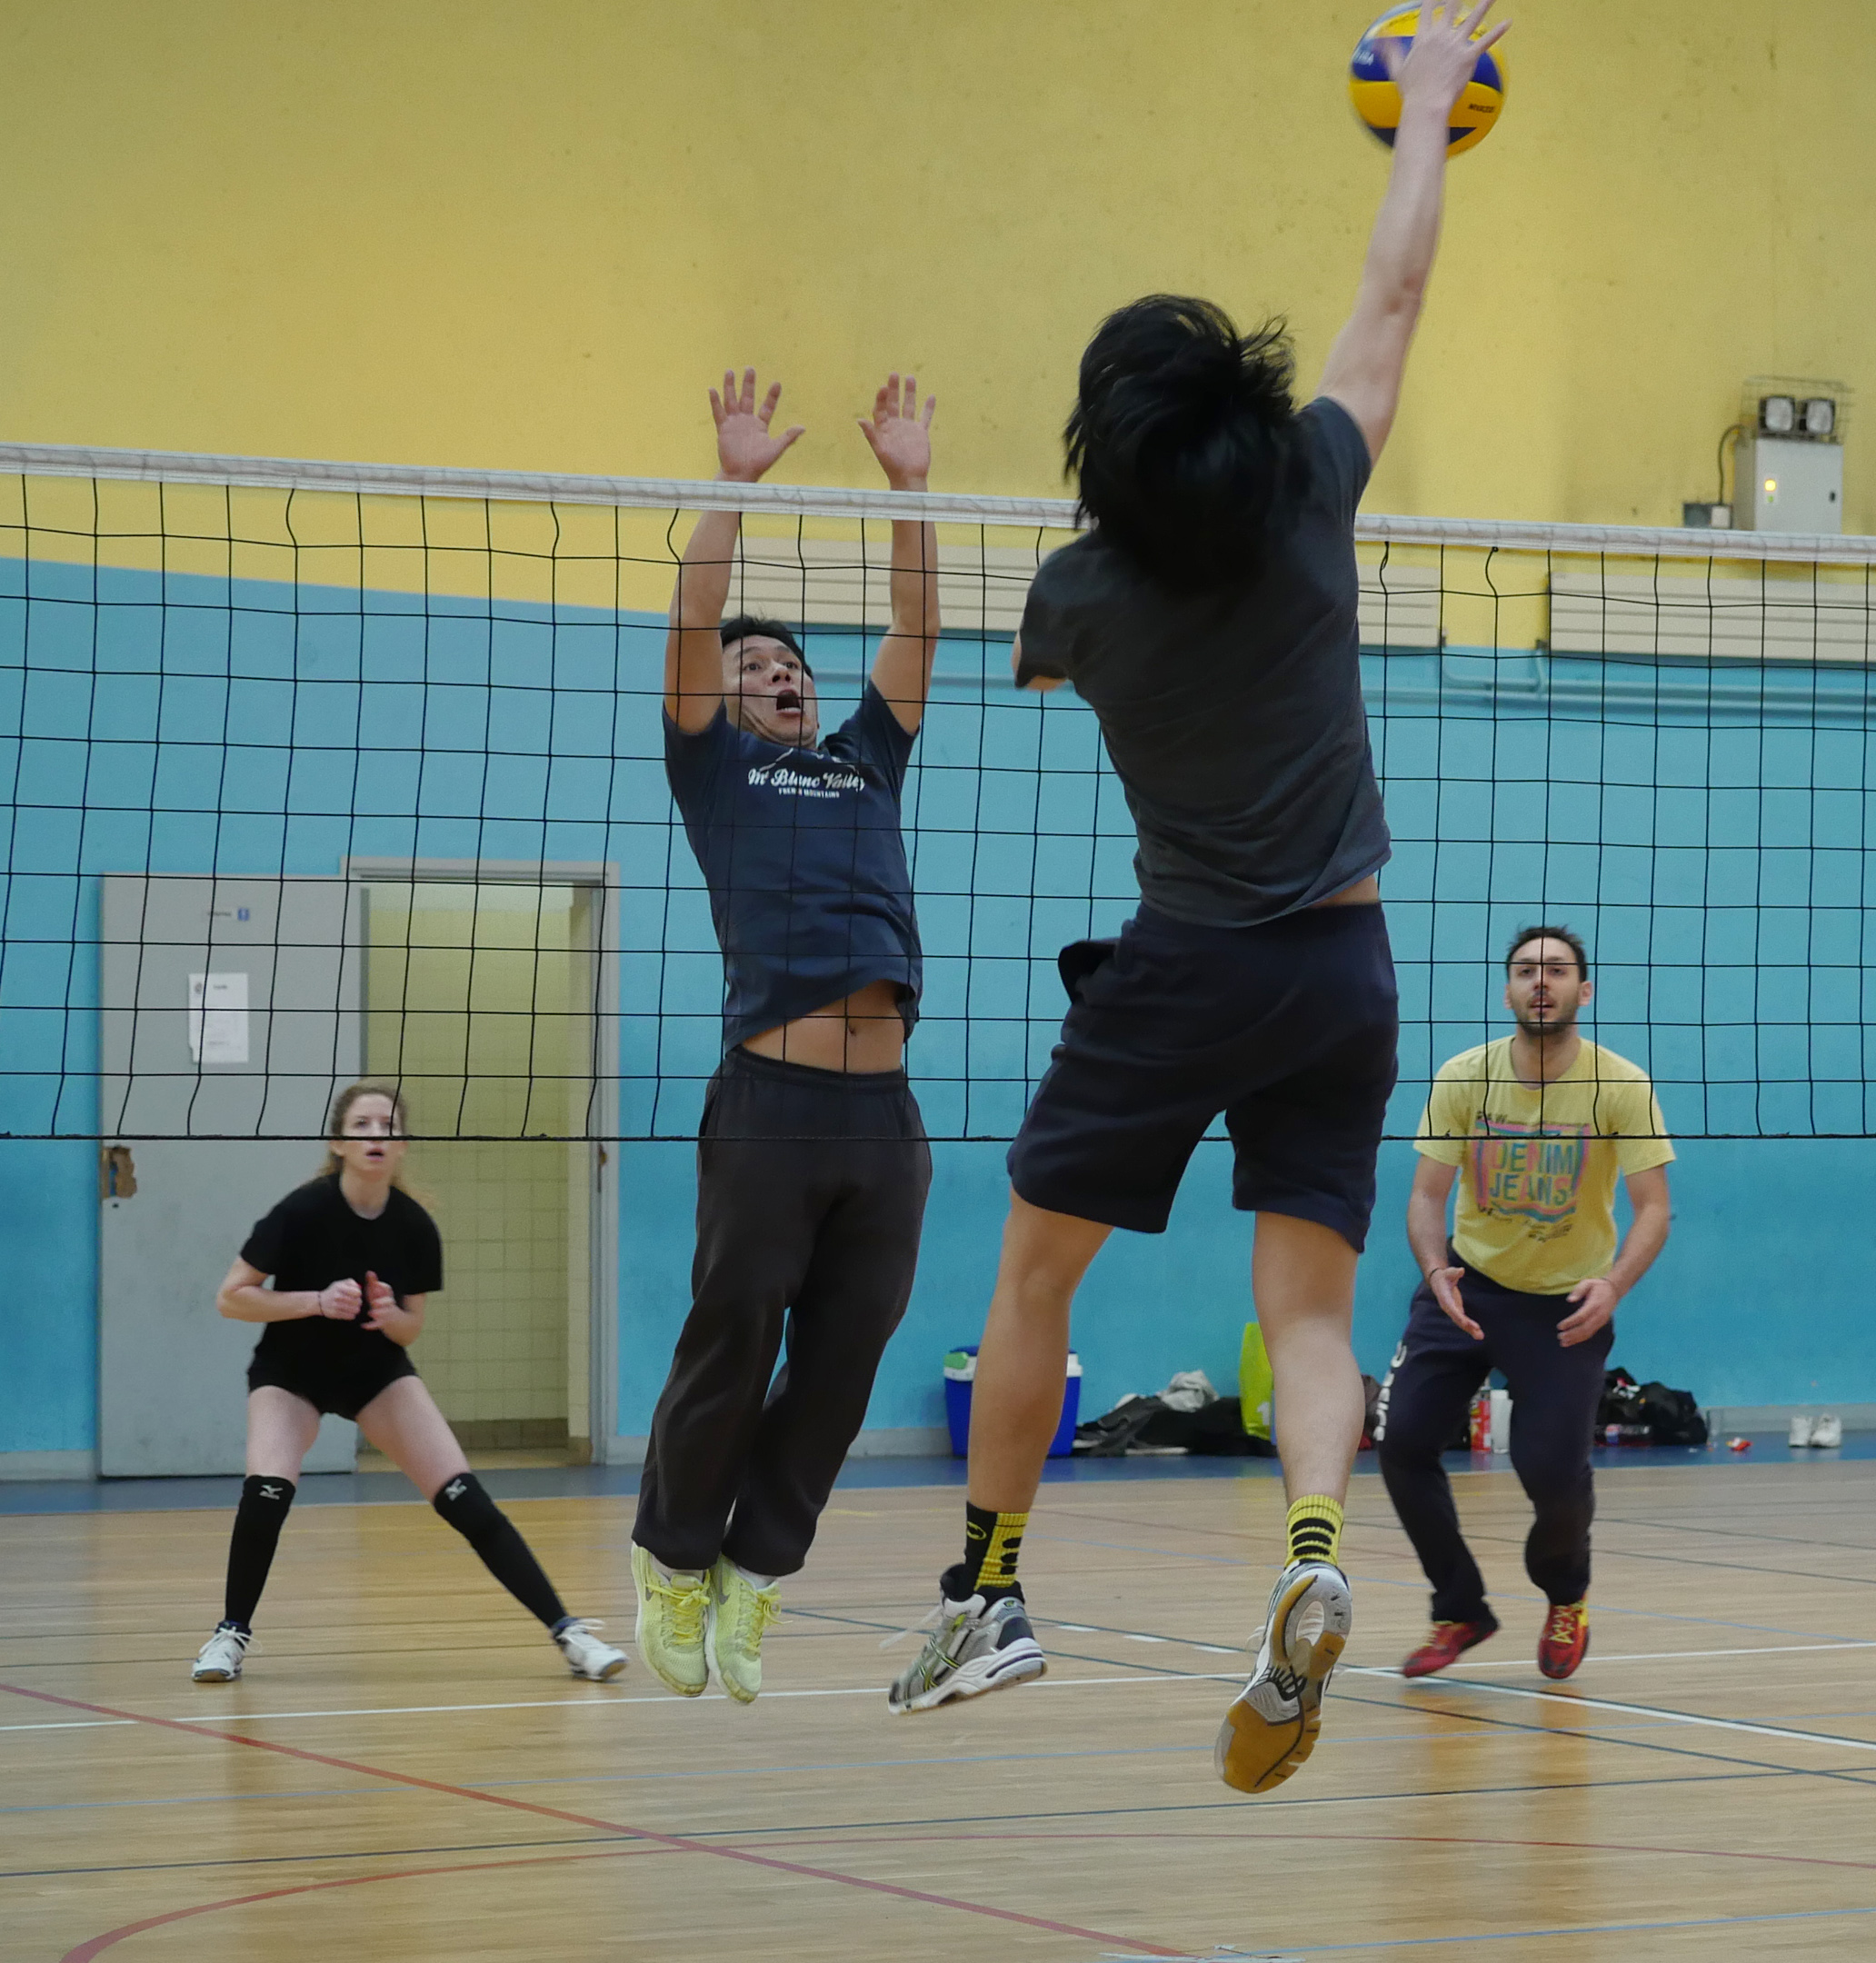 Tournoi Volley USMA 2015-44.JPG